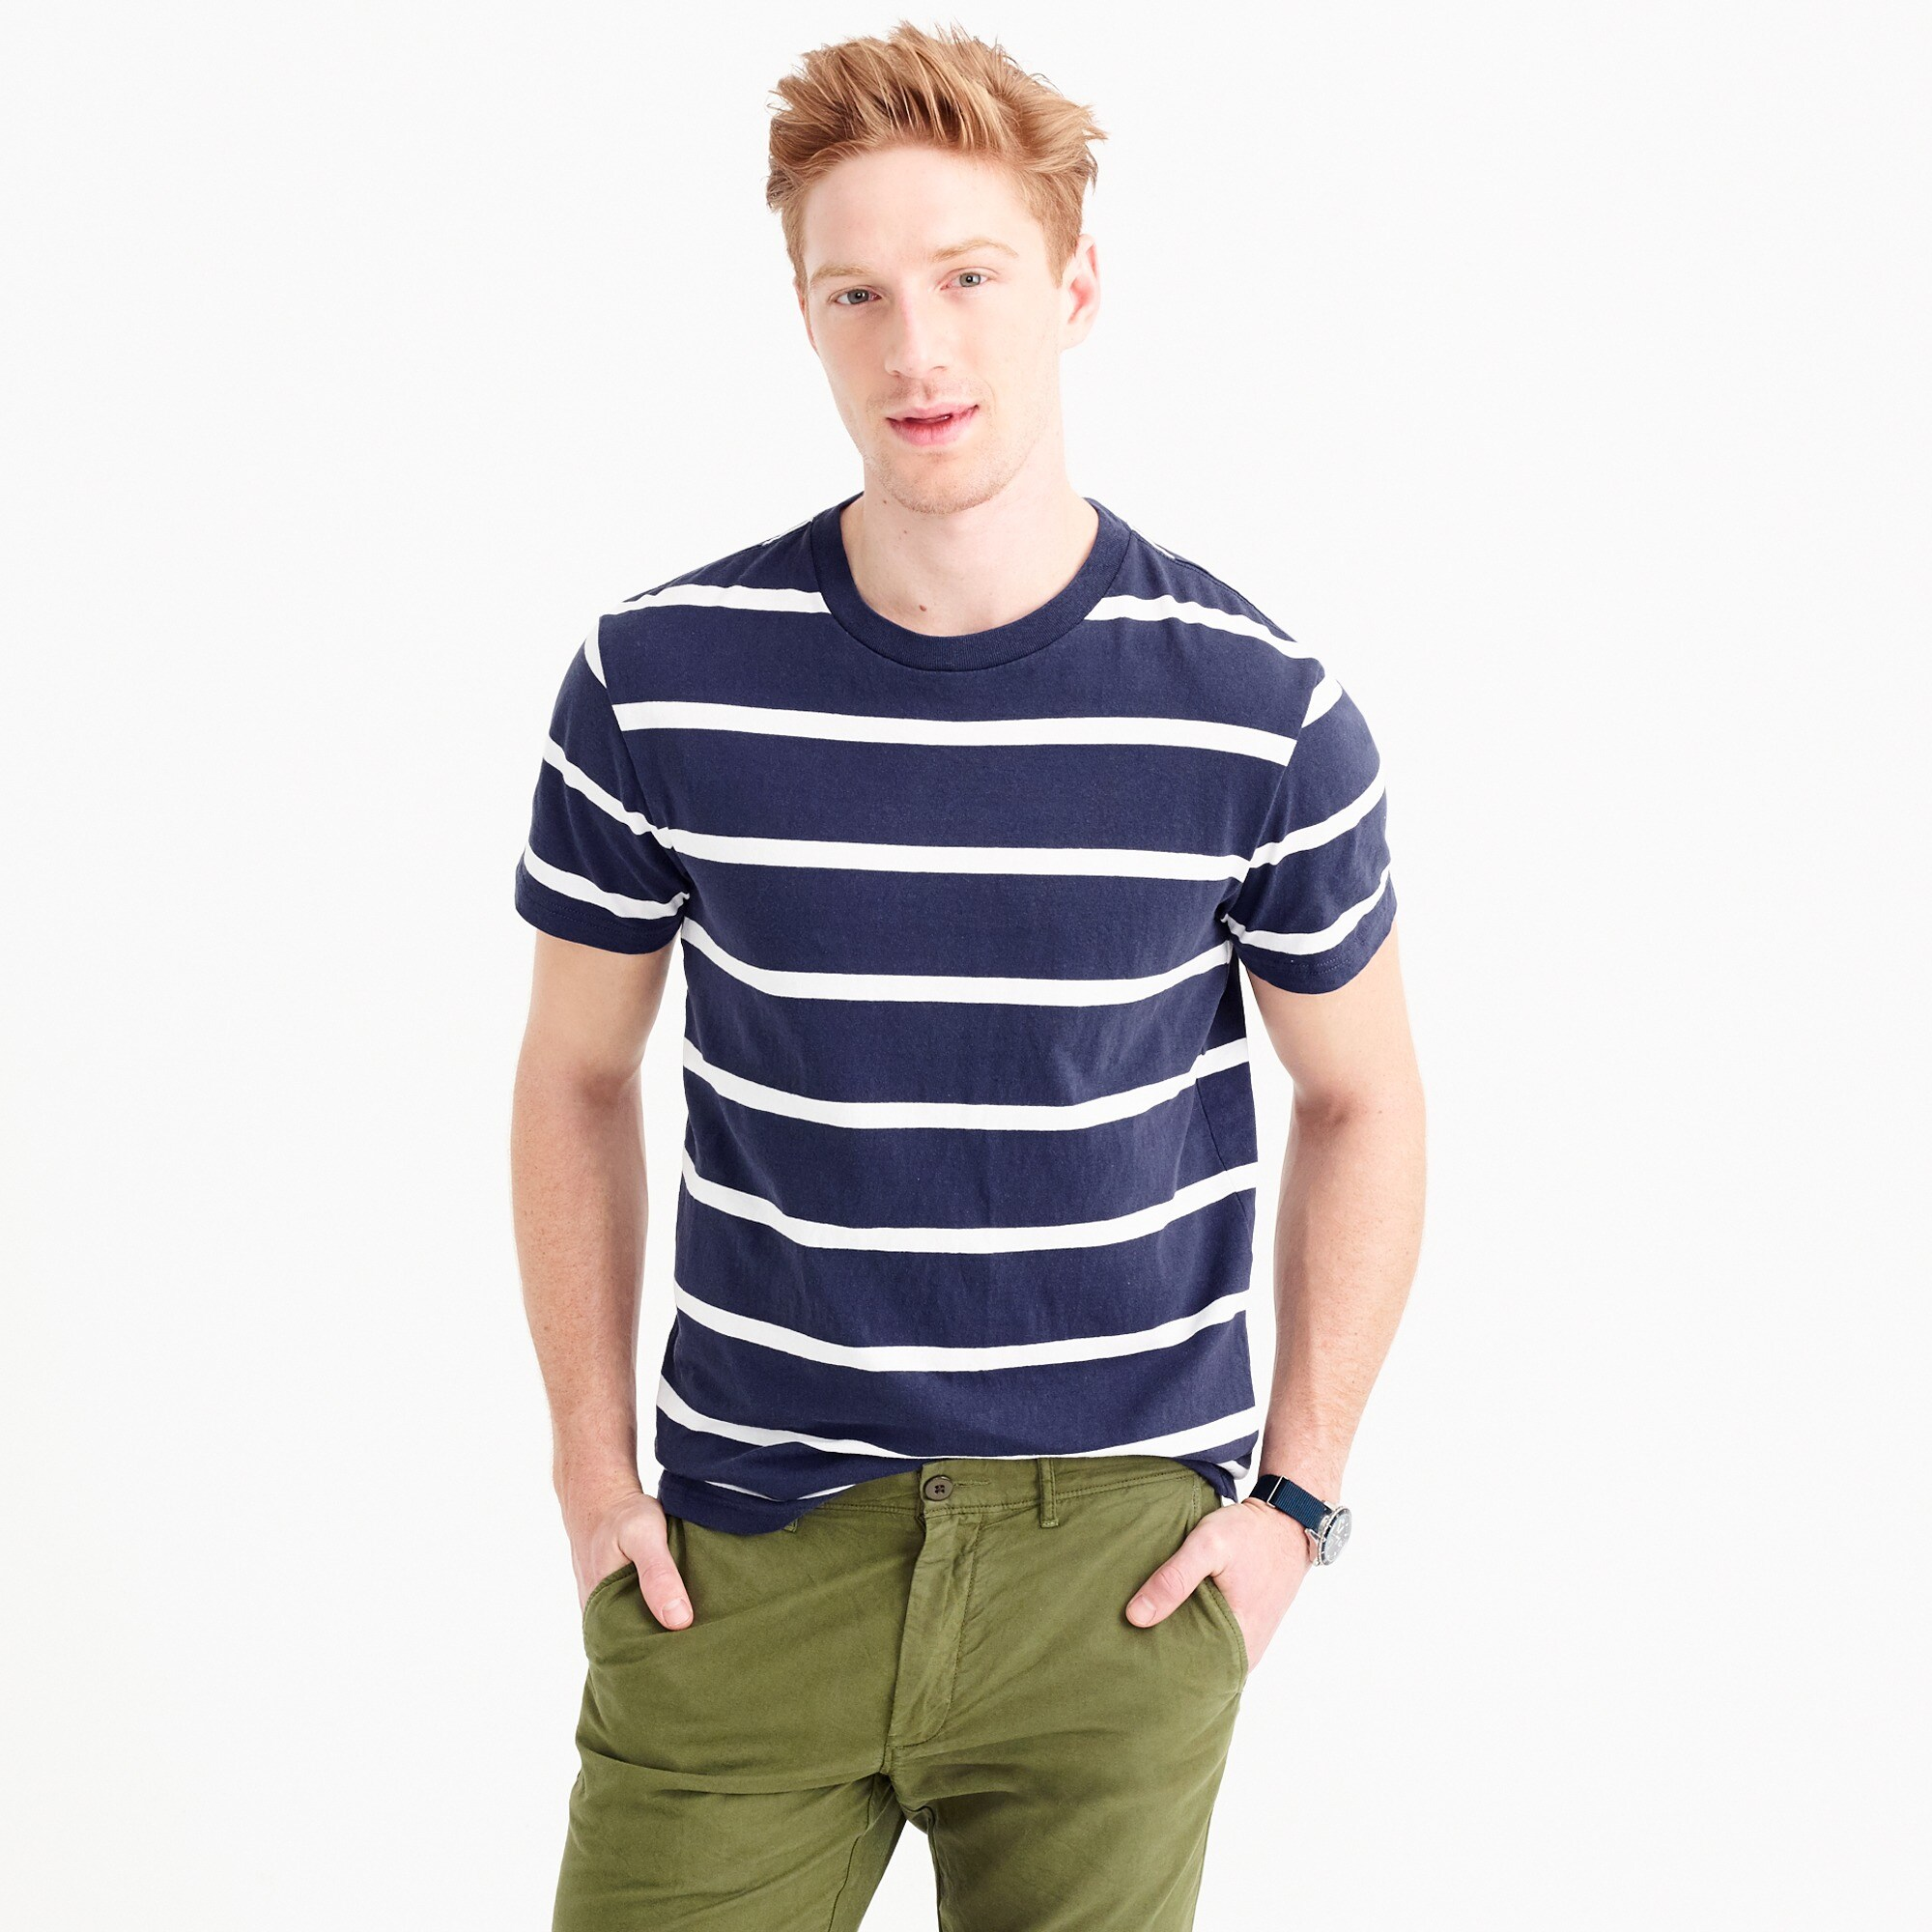 Cotton T-shirt in white stripe